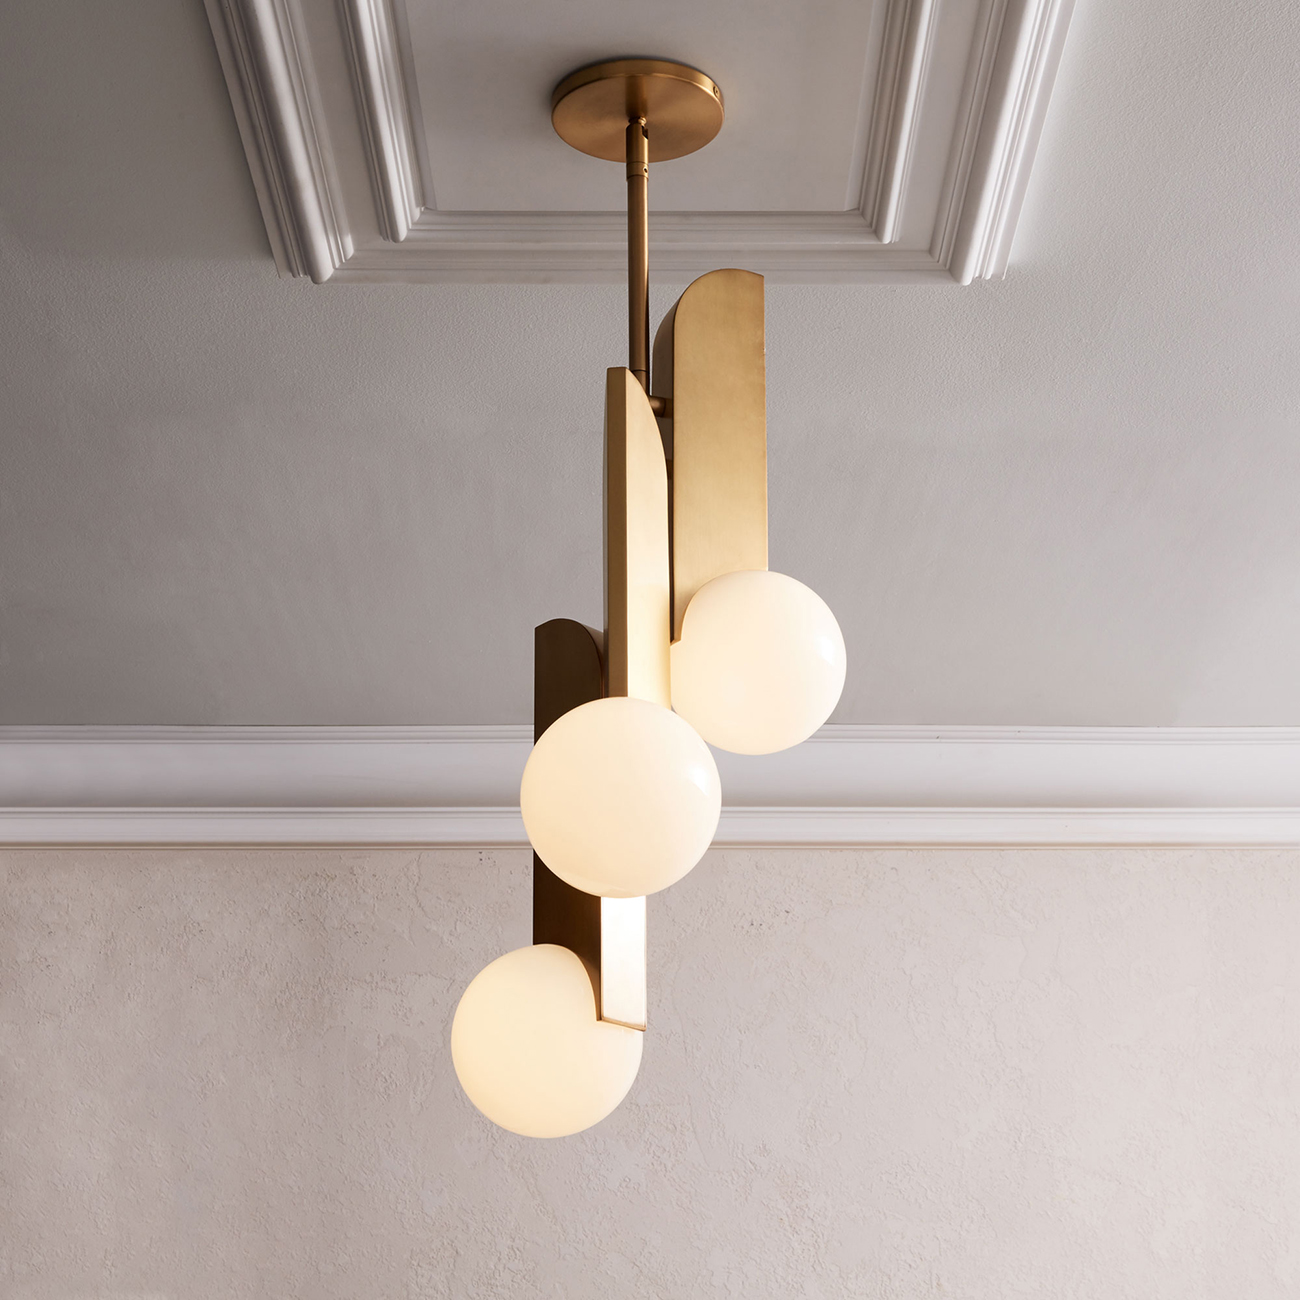 West Elm Capiz | Pottery Barn Ceiling Light | West Elm Chandelier